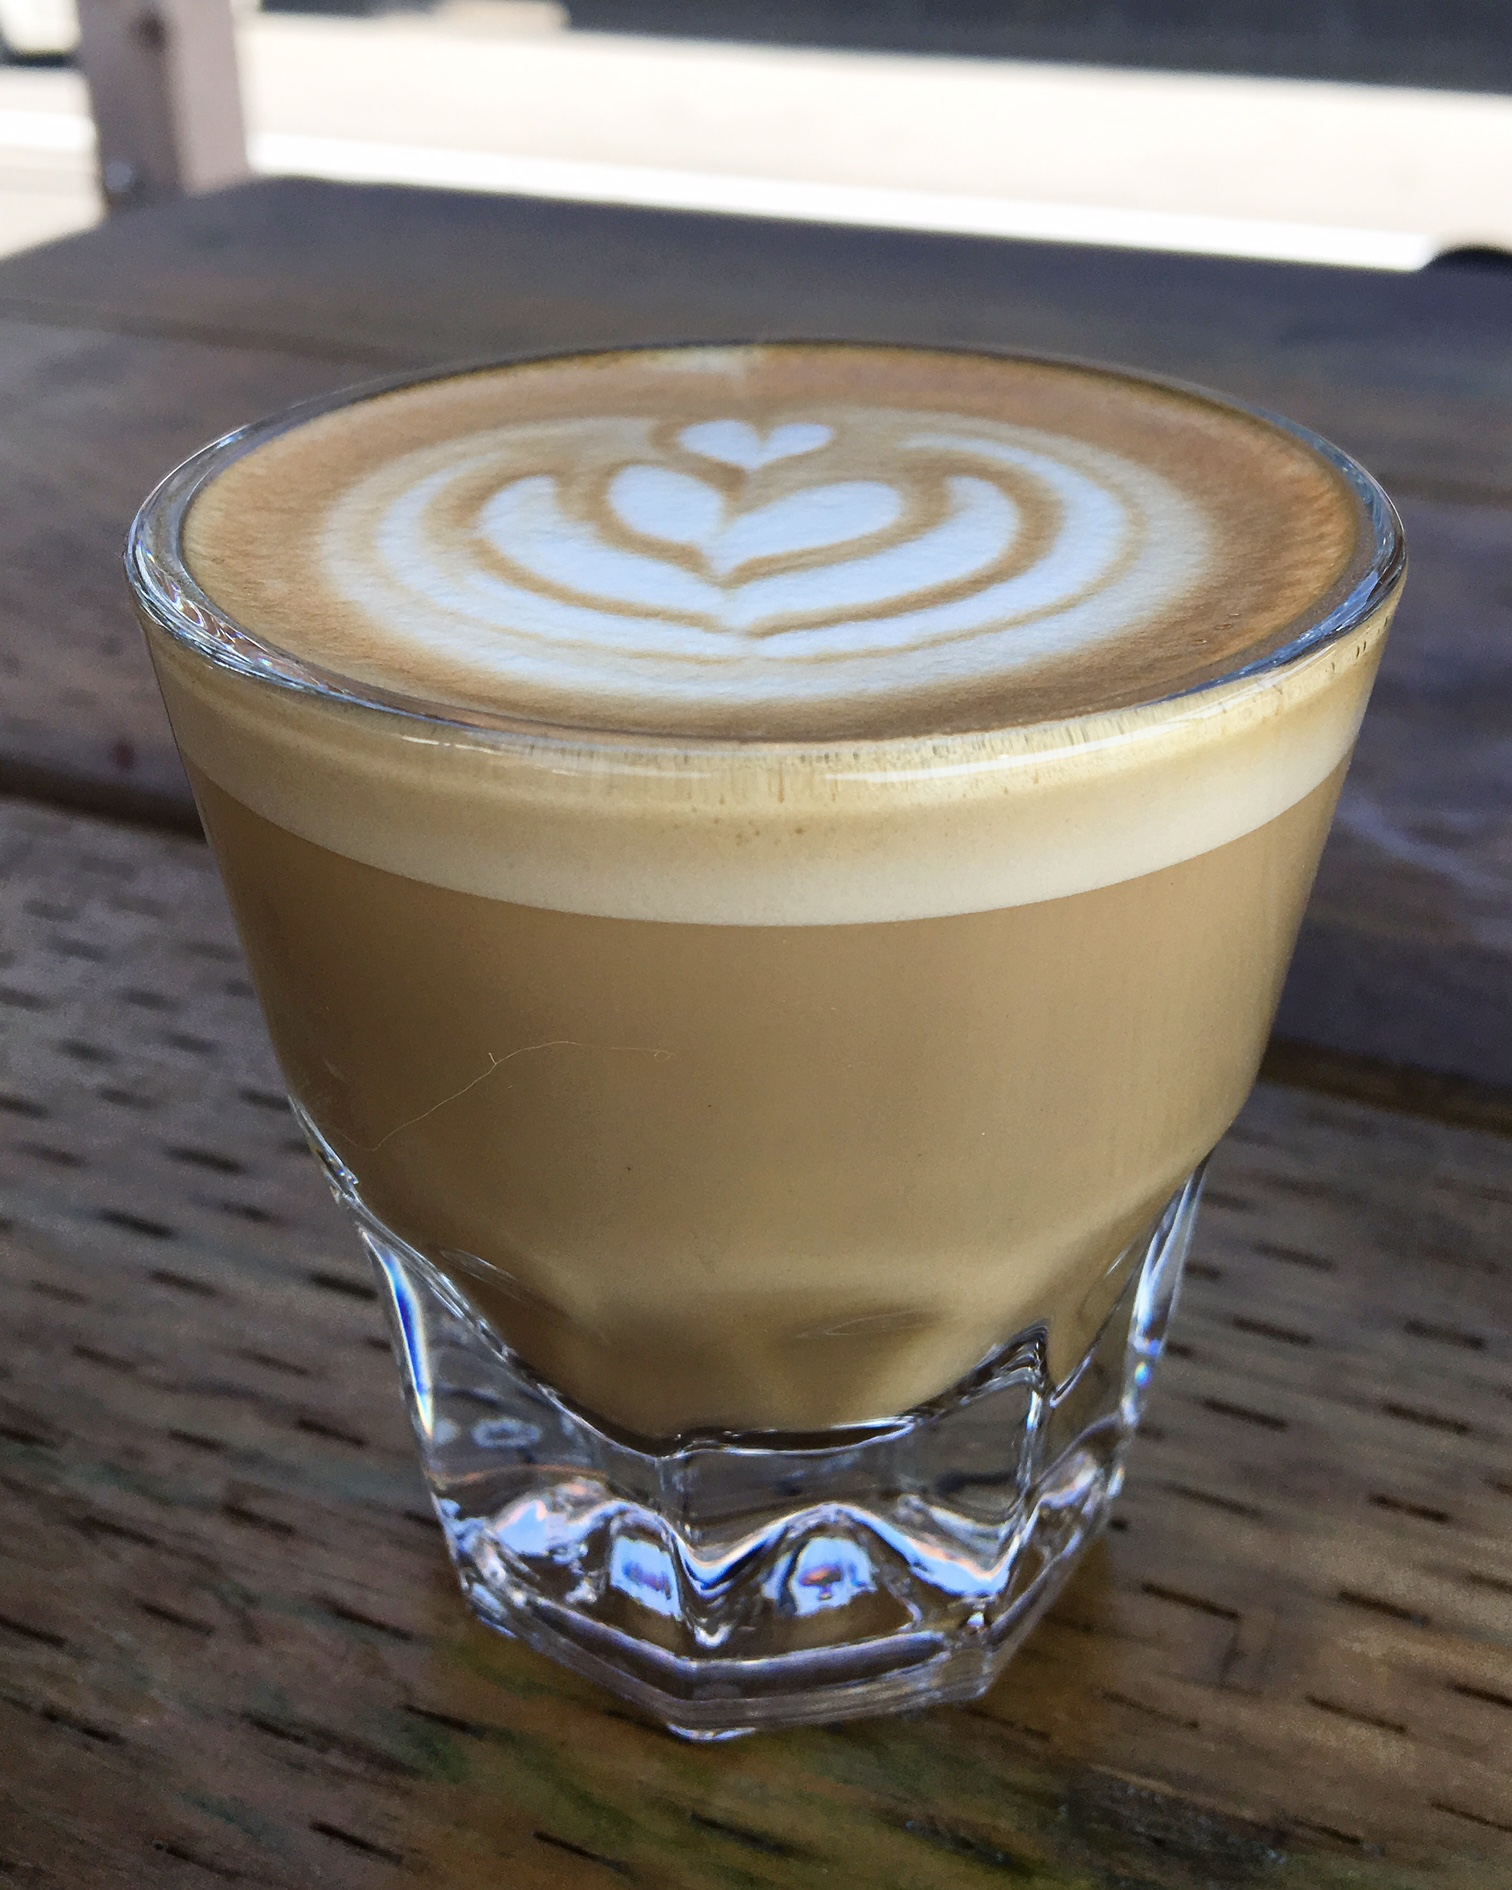 Cortado : 1/2 espresso, 1/2 foamy milk to reduce acidity.